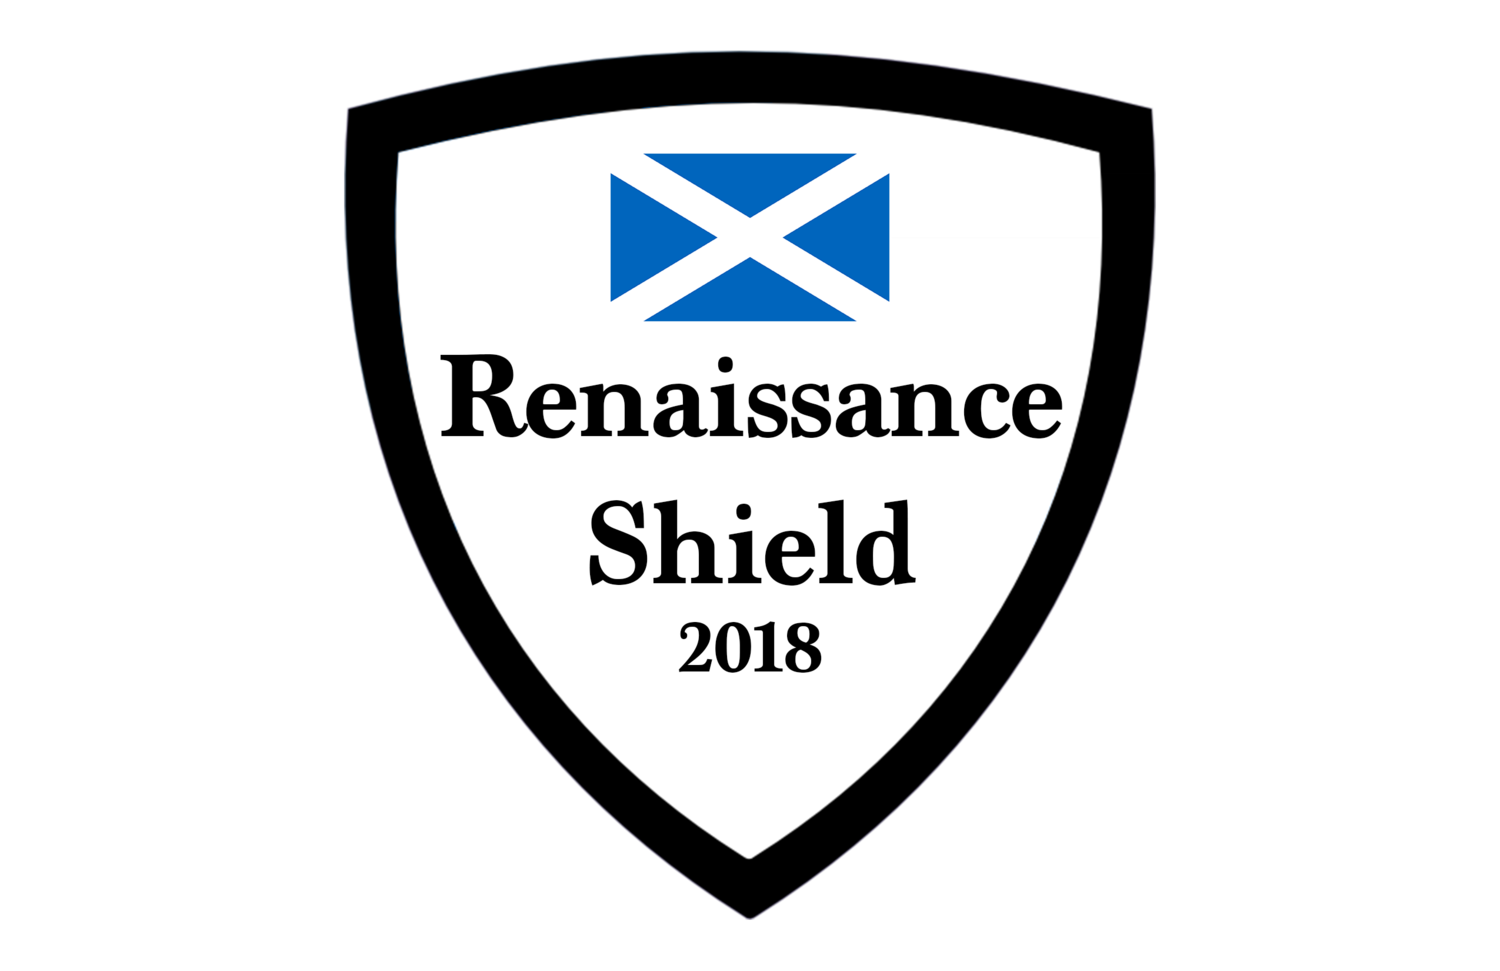 Renaissance Shield